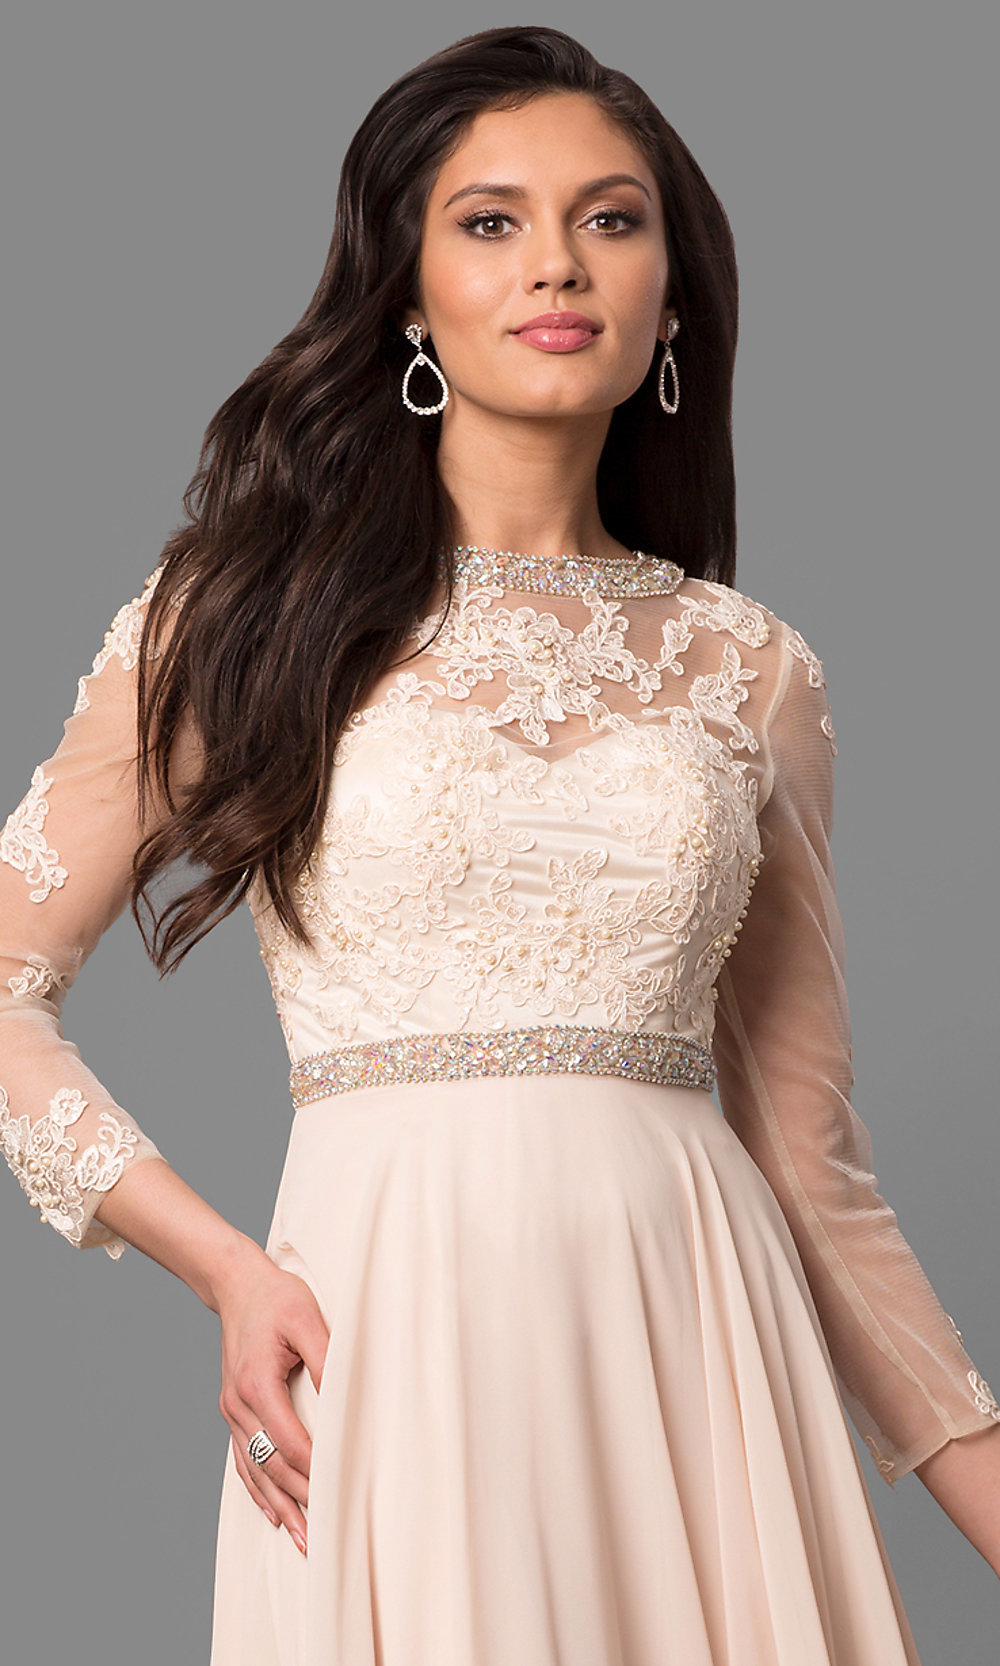 Cut Out Prom Dress With Long Sheer Sleeves Promgirl